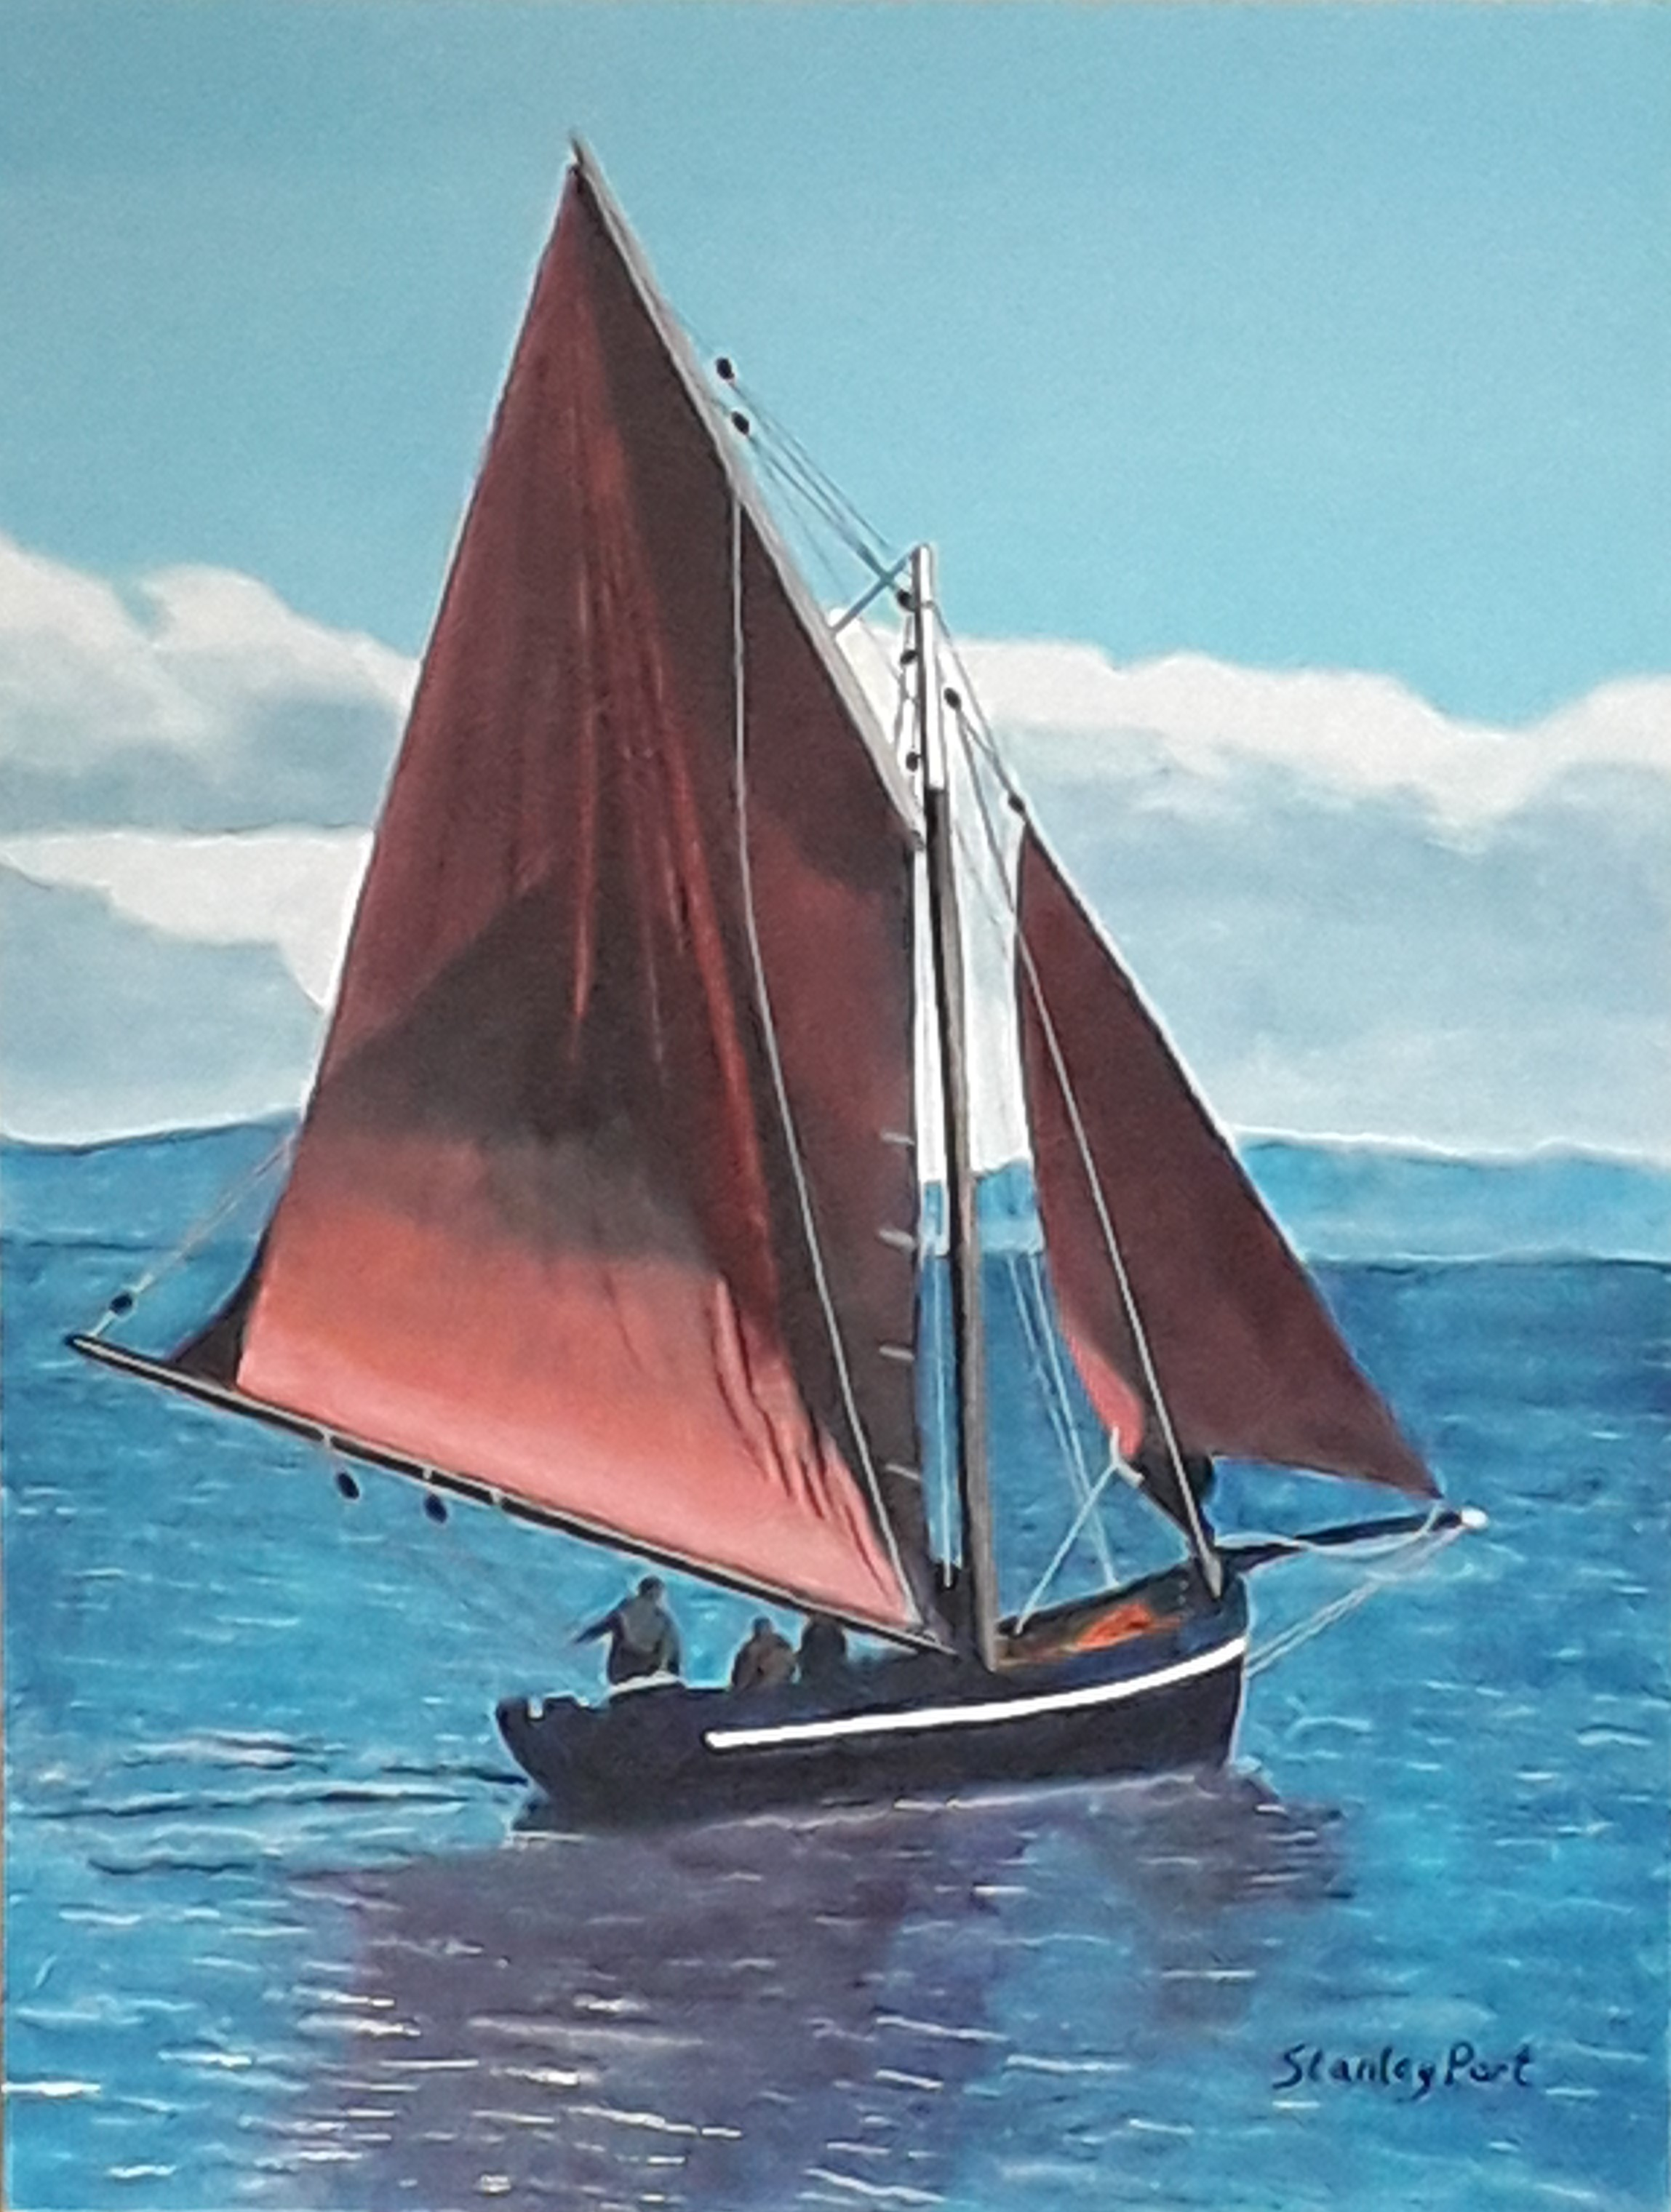 Sailing Boat Seascape Painting